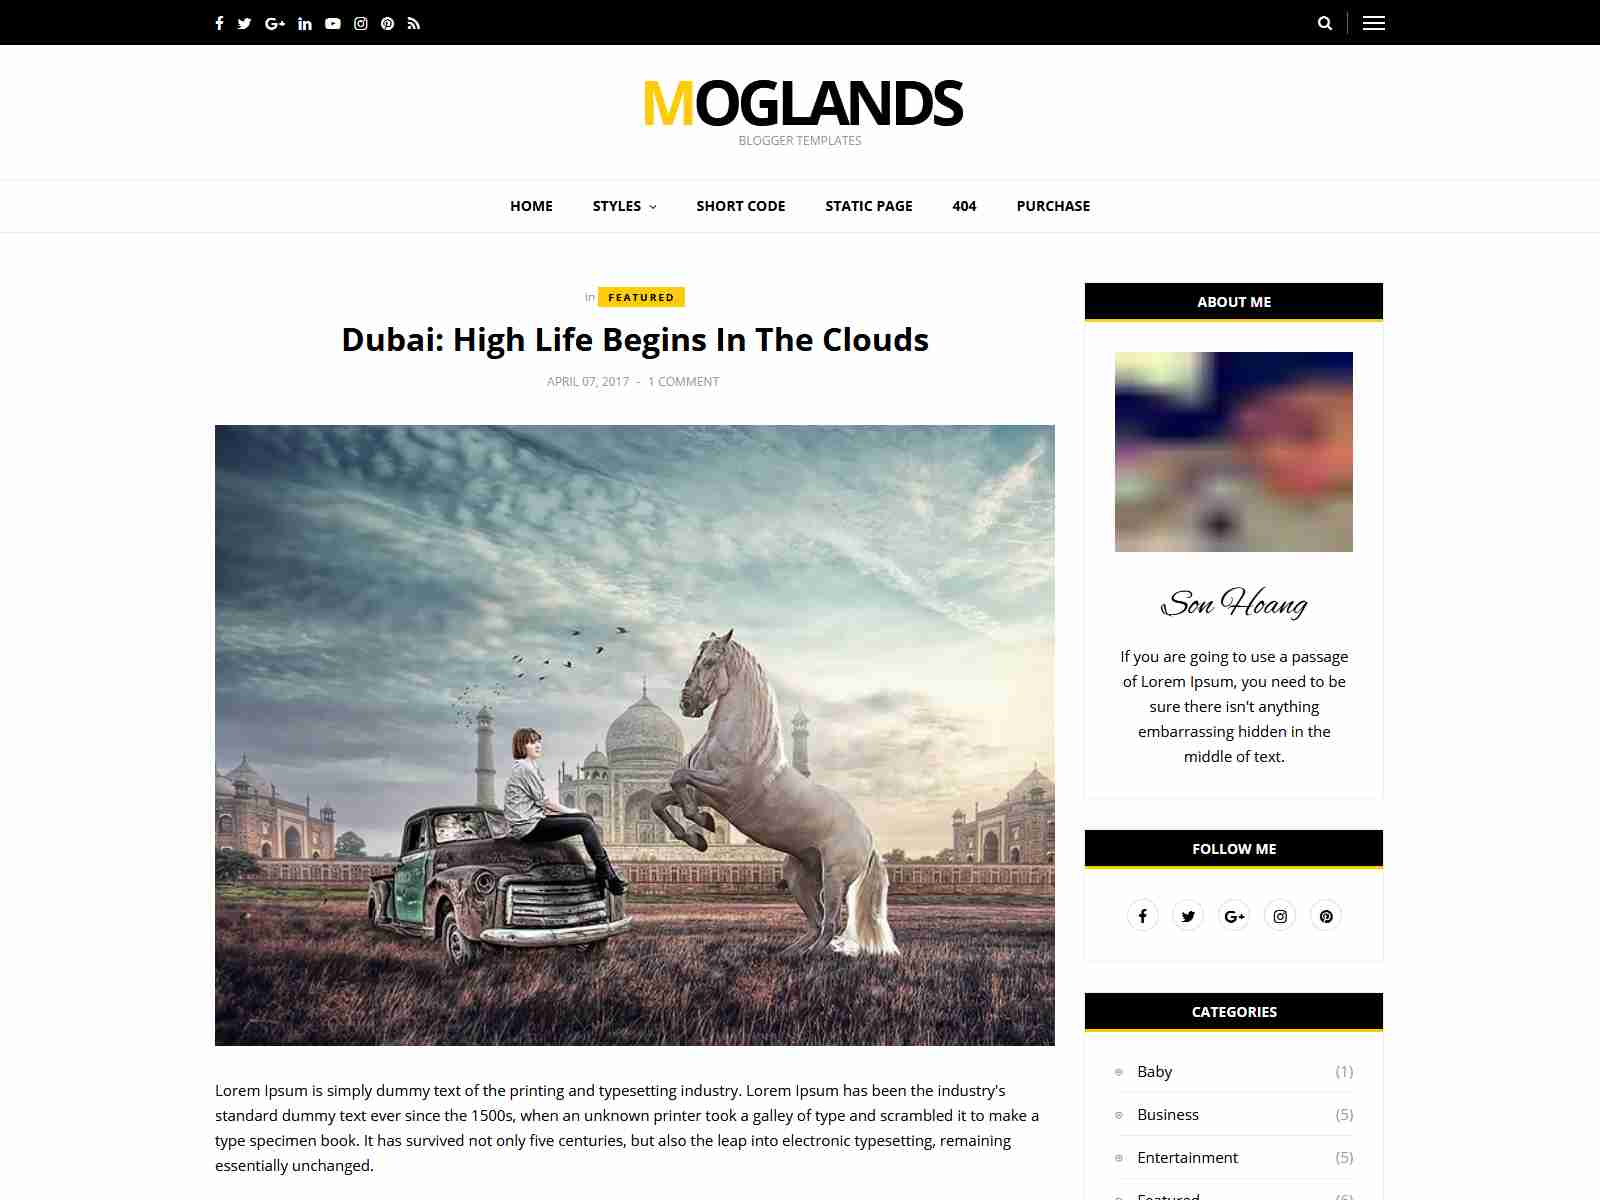 Mogtemplates - MogLands Template For Blogger - 2 Styles